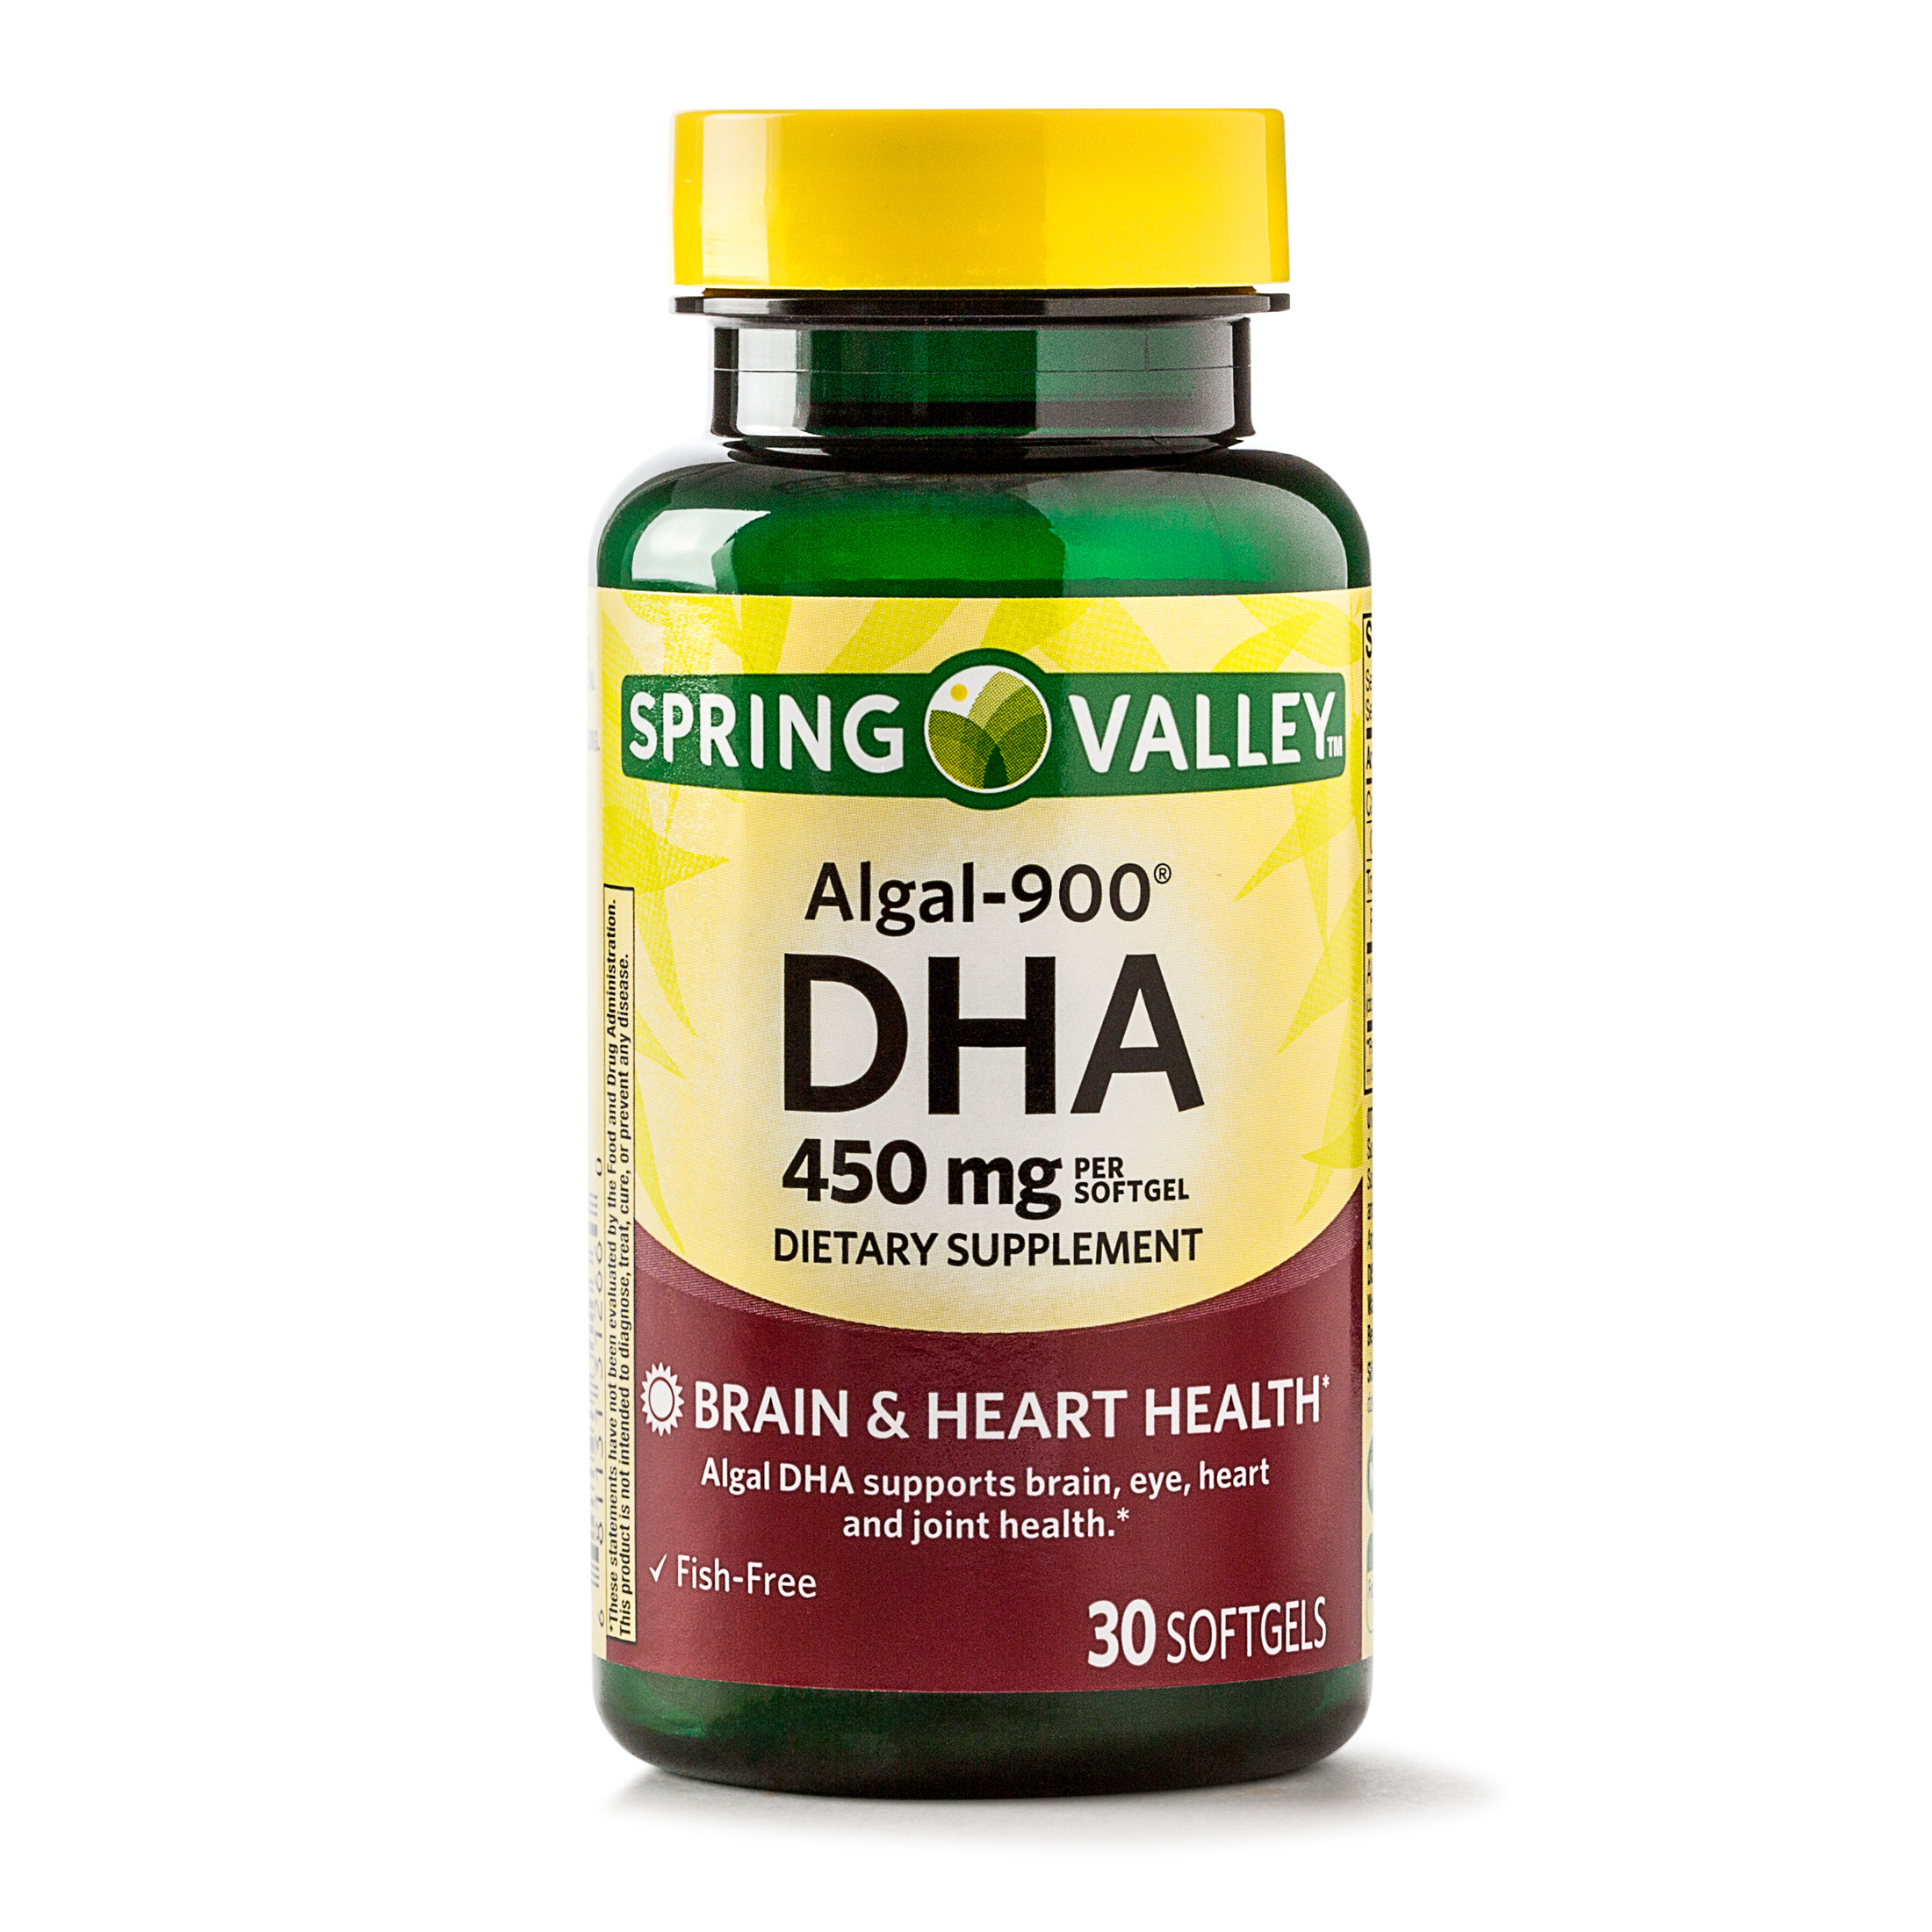 Spring Valley Algal-900 DHA, 450mg, 30ct